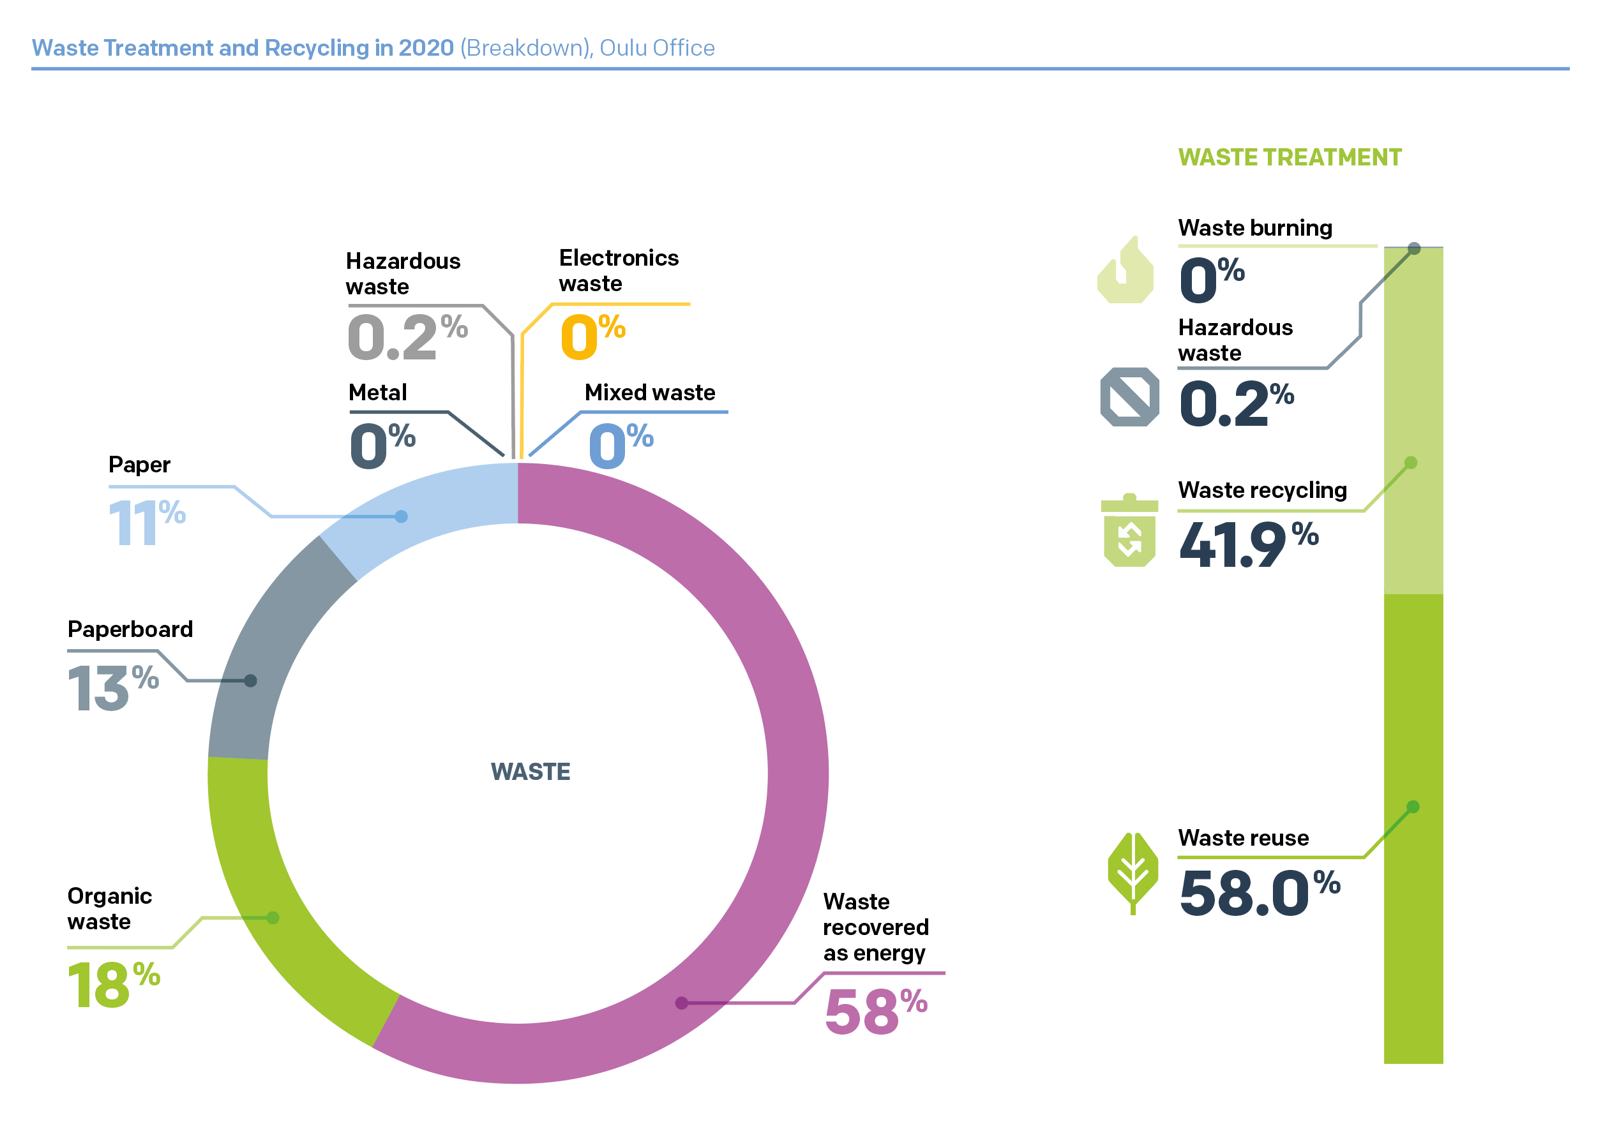 Waste Treatment and Recycling in 2020 (Breakdown), Oulu Office